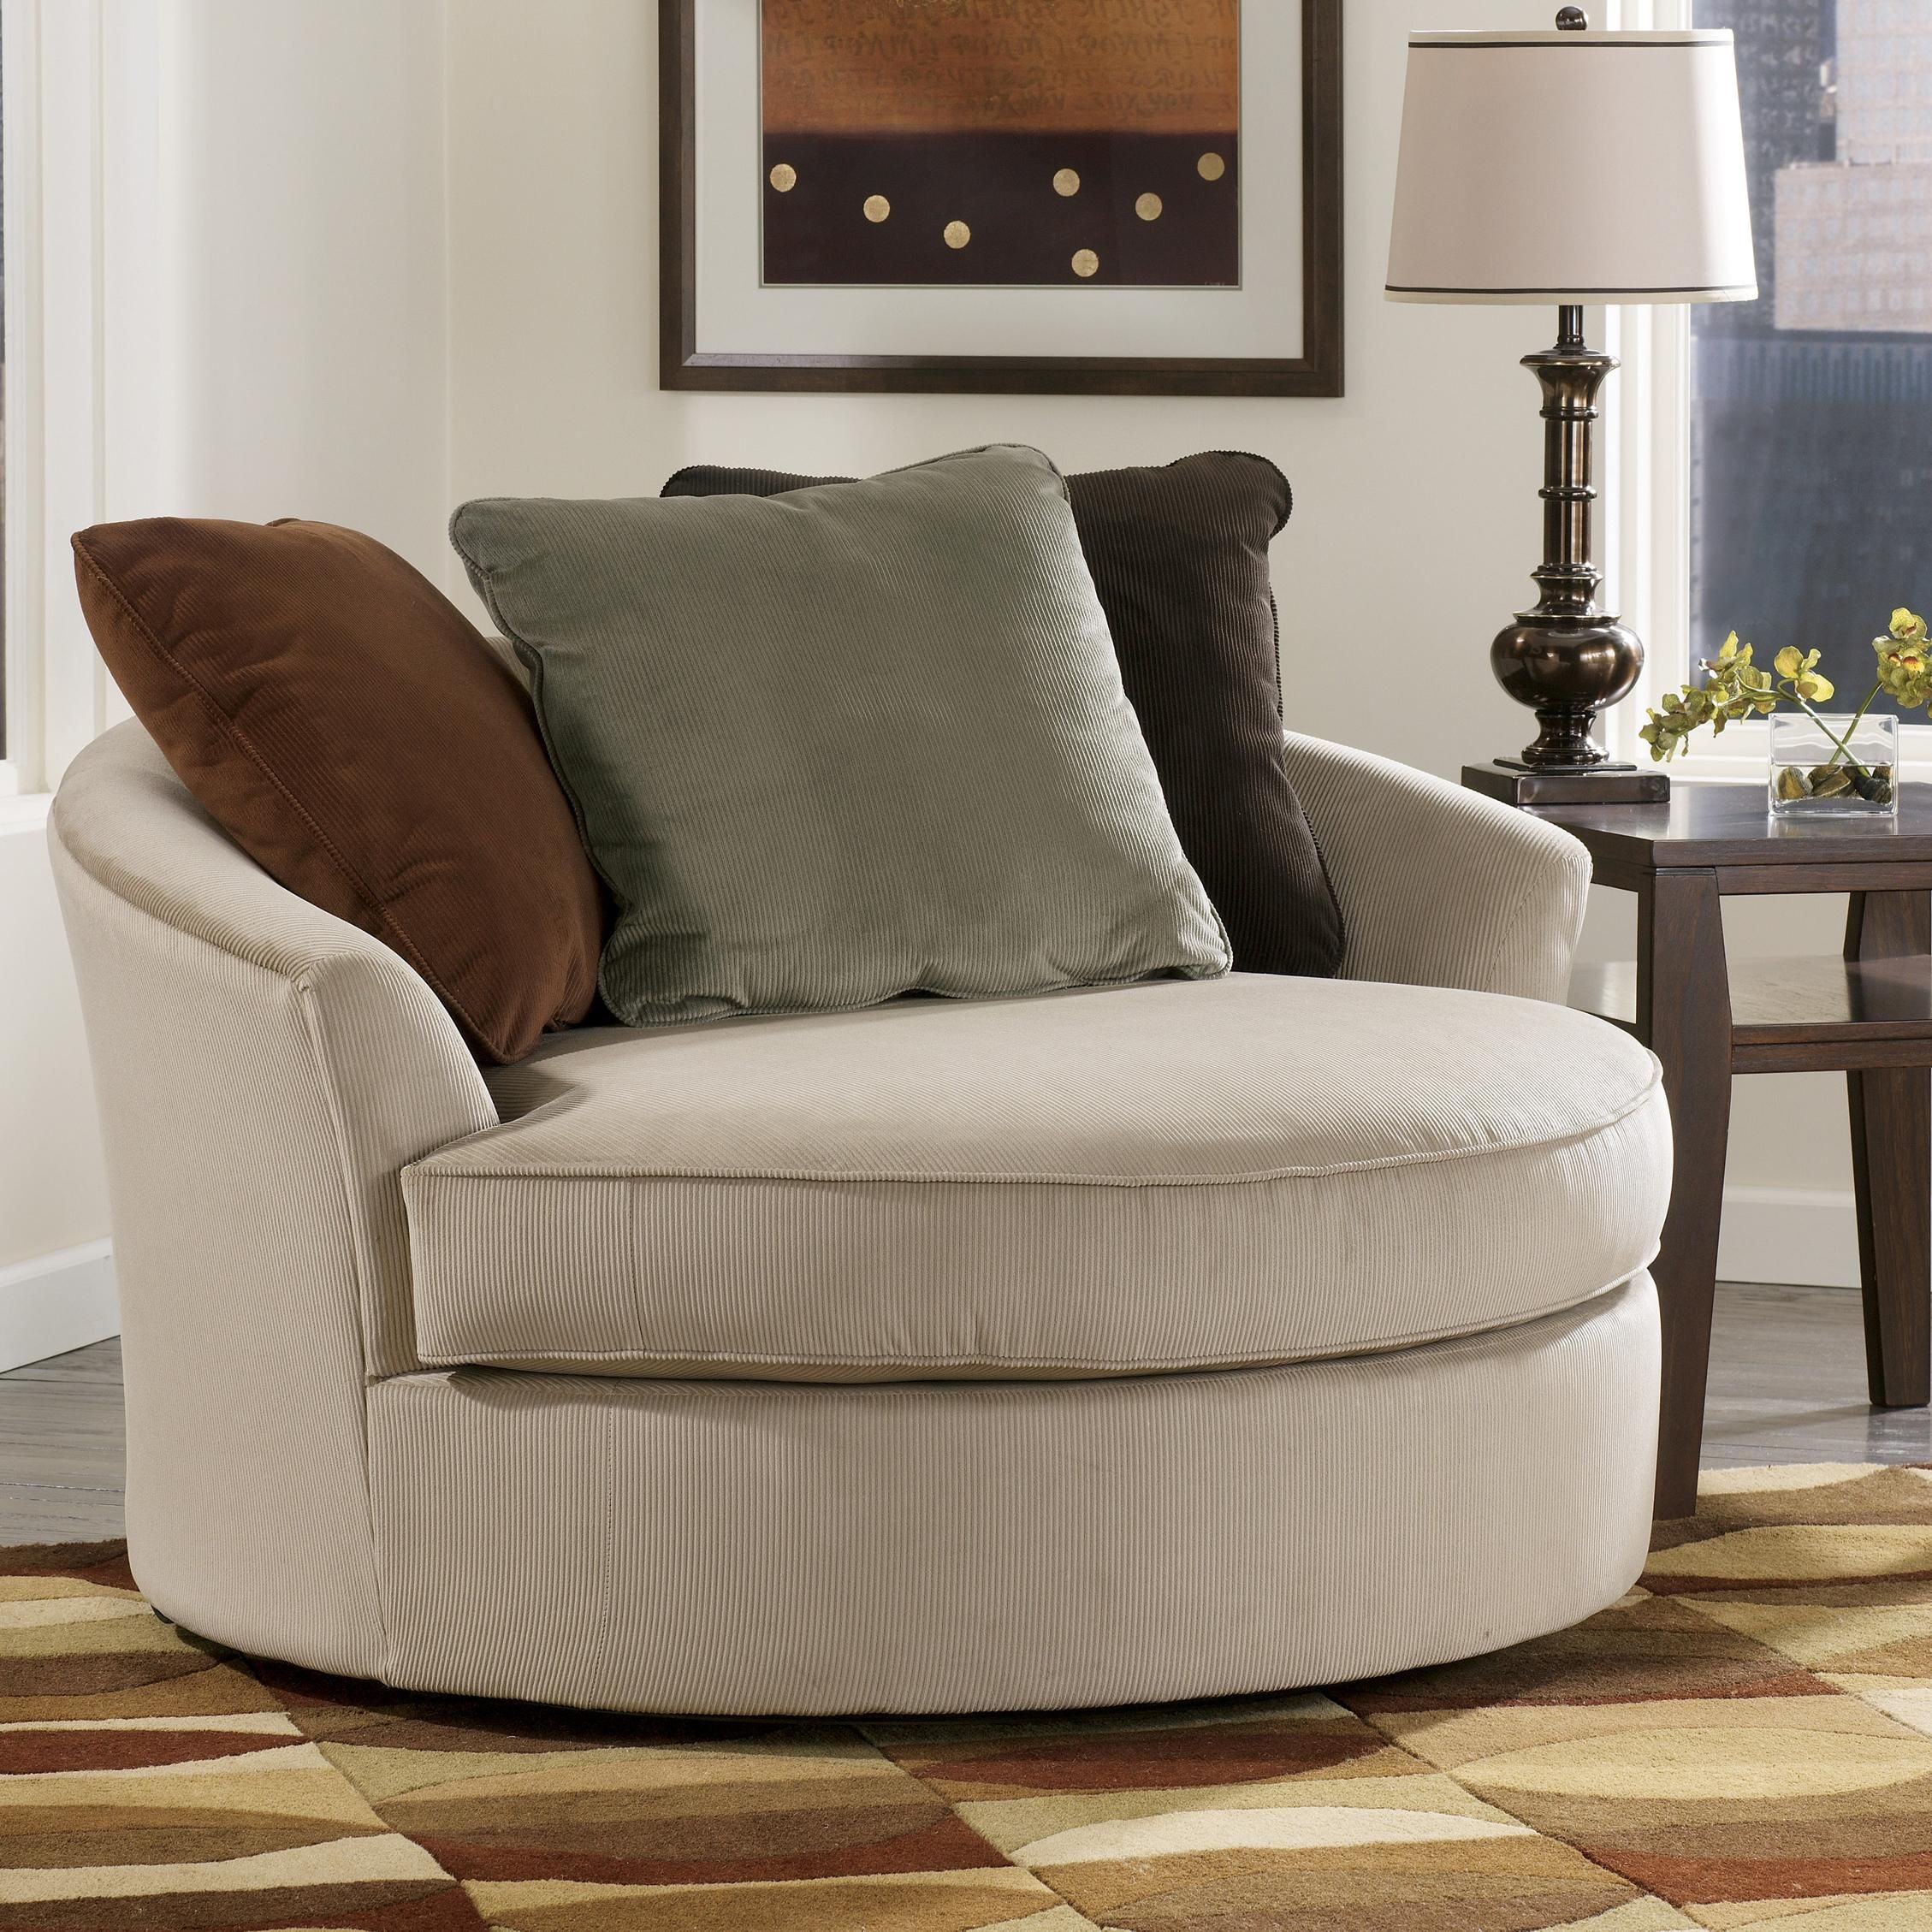 Etonnant Laken Oversized Round Swivel Chair By Signature Design By Ashley Furniture